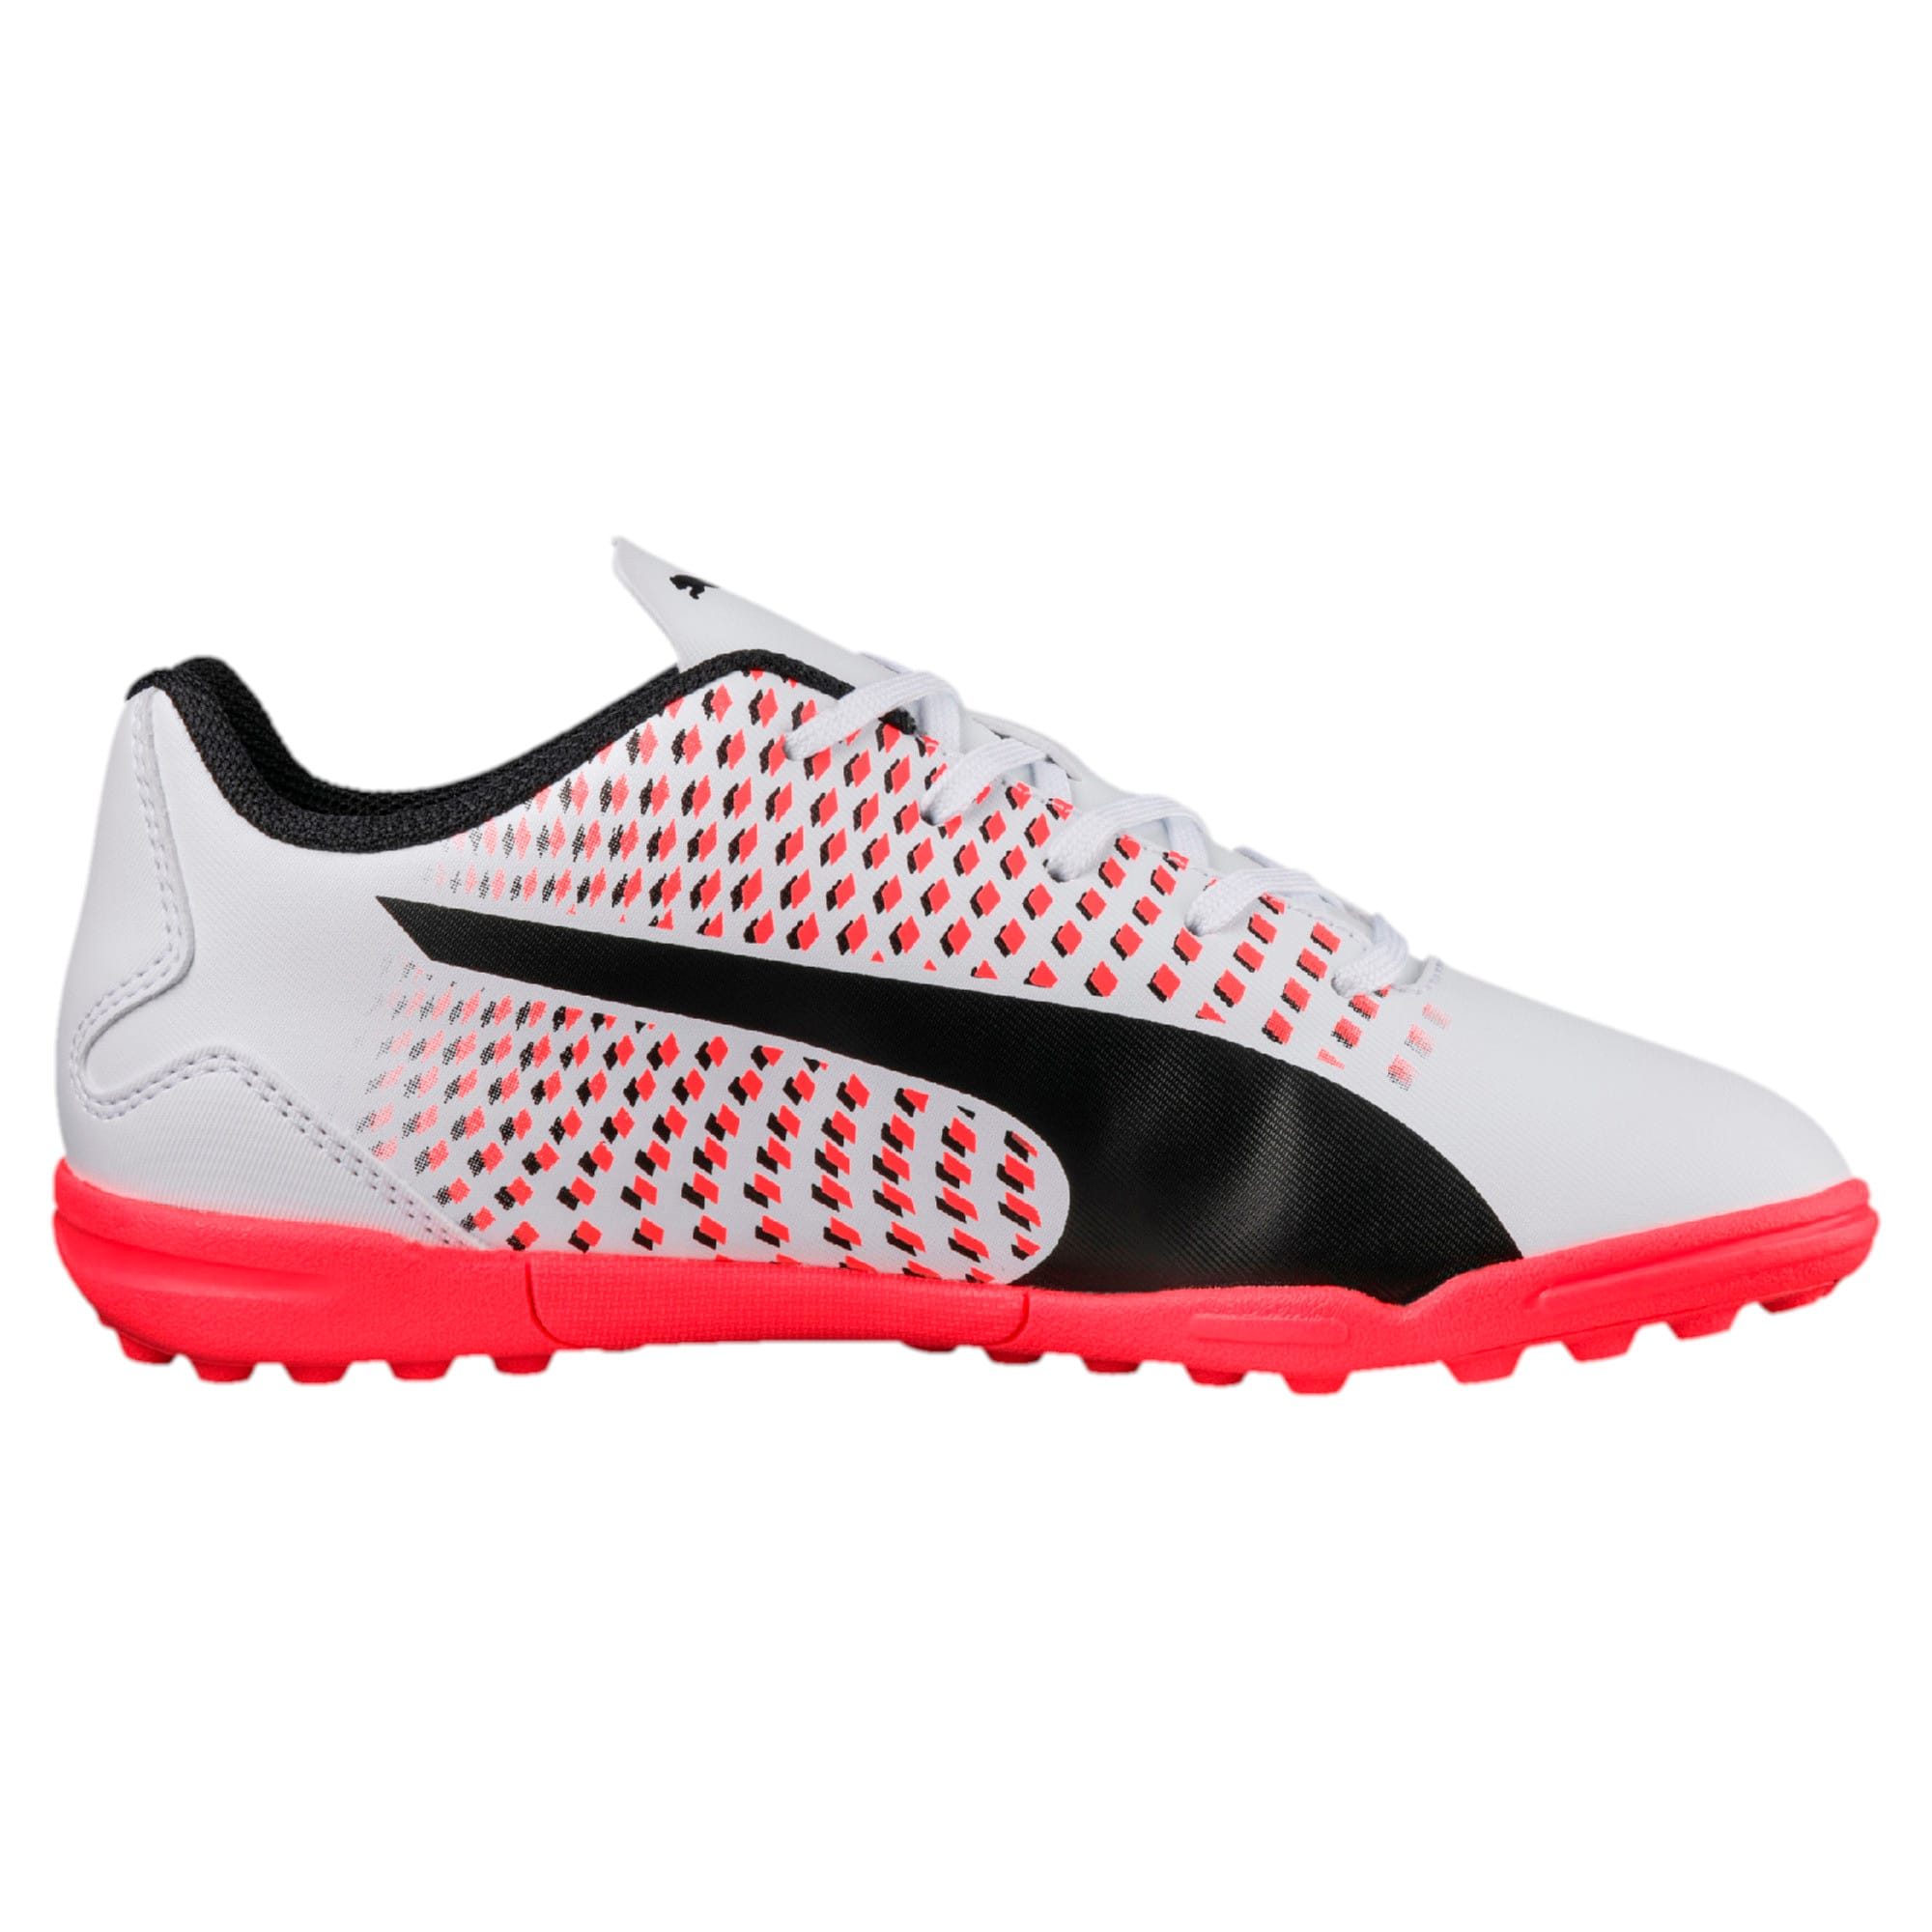 Thumbnail 5 of Adreno III TT Kids' Football Boots, White-Black-Coral, medium-IND